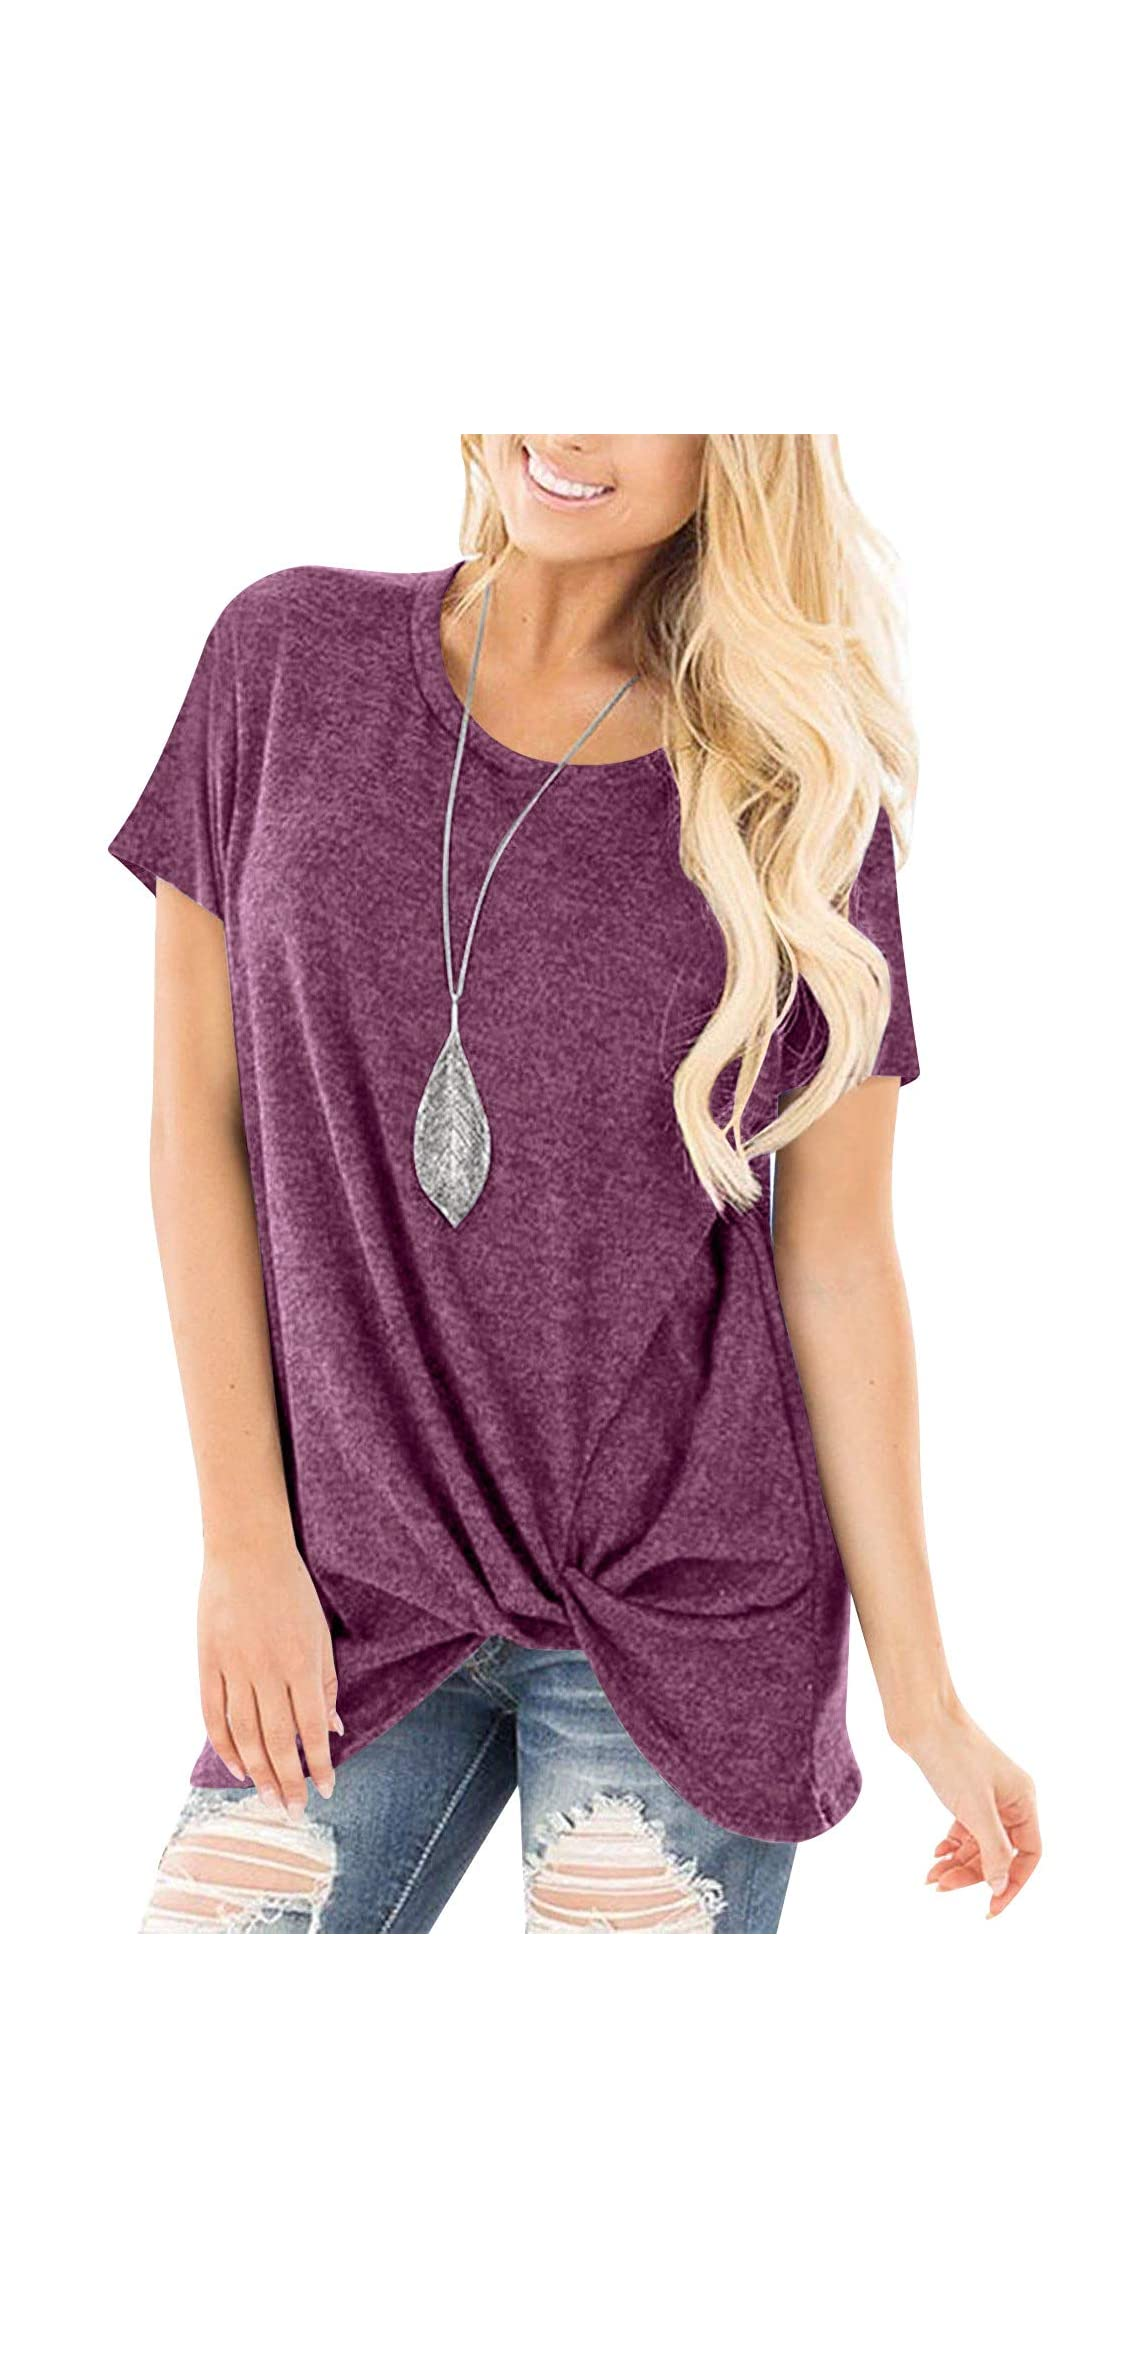 Women's Comfy Casual Long Sleeve Side Twist Knotted T